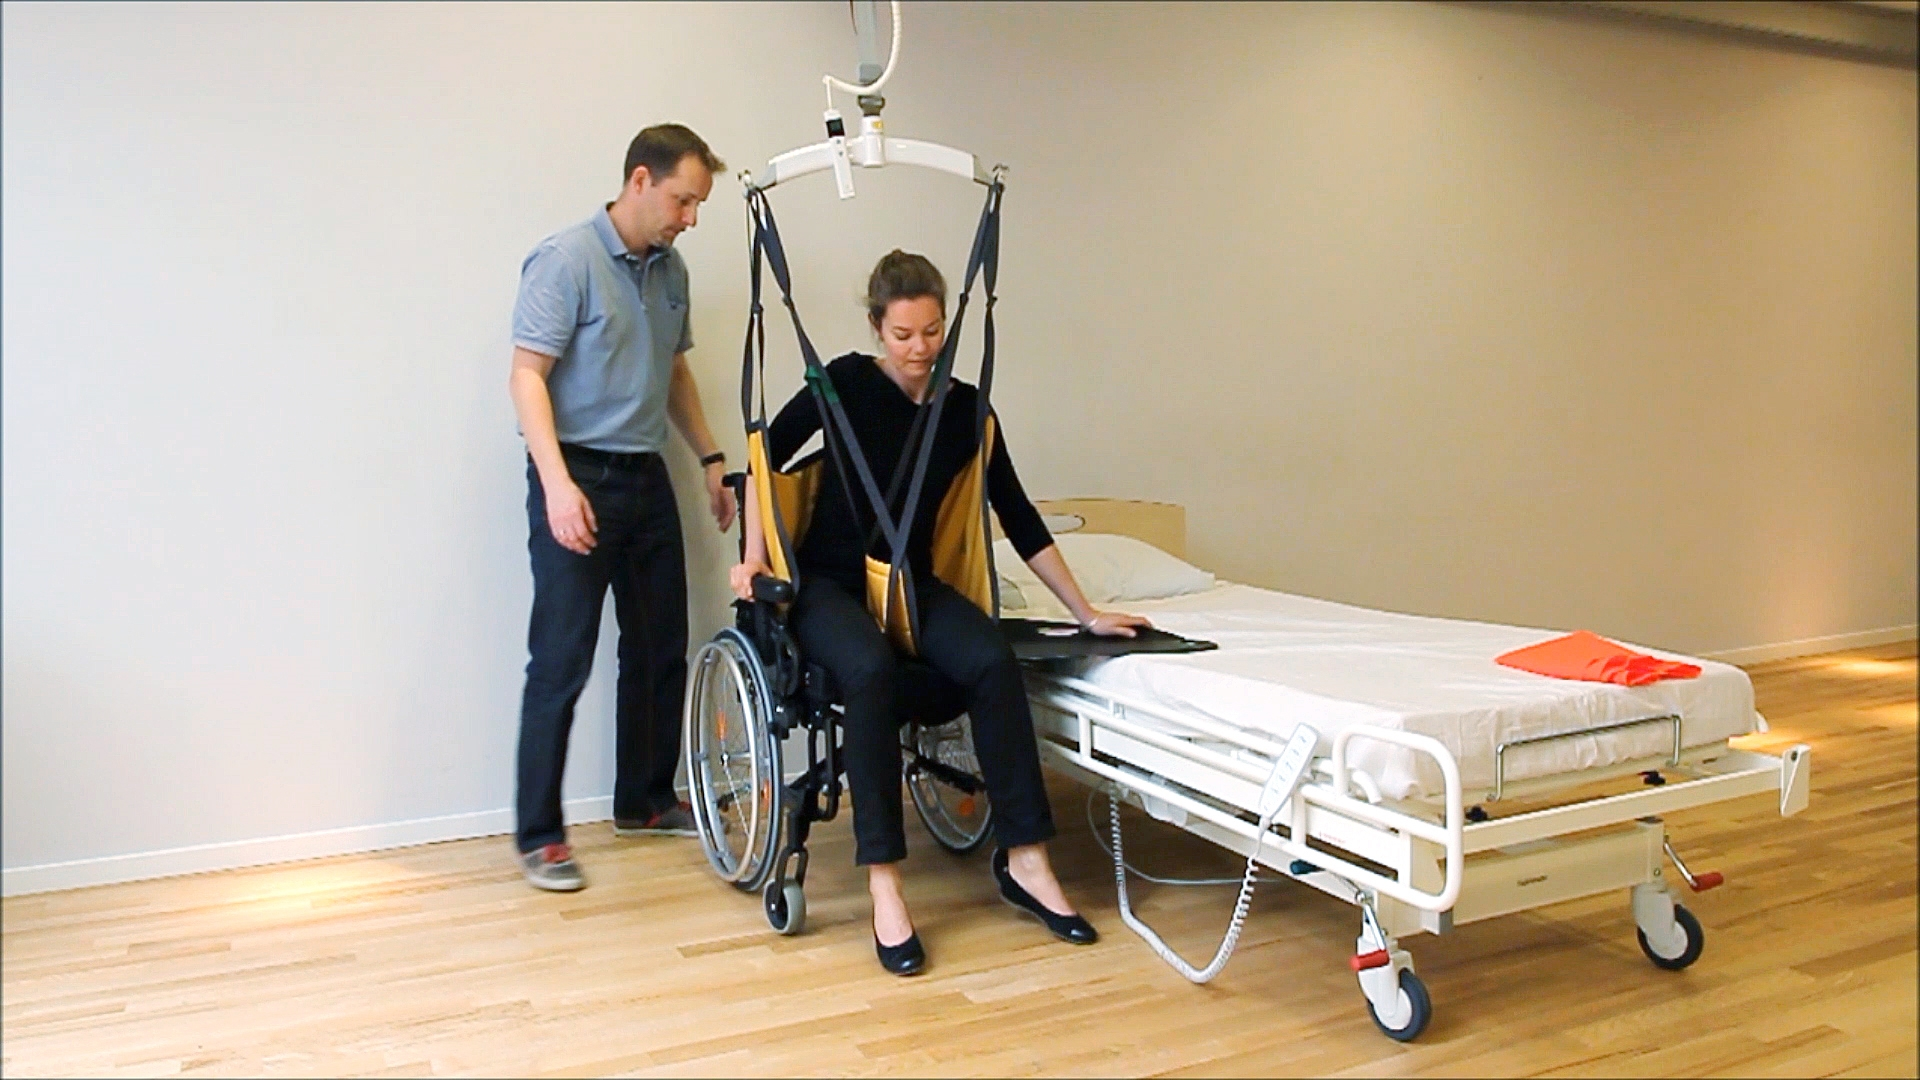 Rehabilitation of the patient - getting from wheelchair to bed